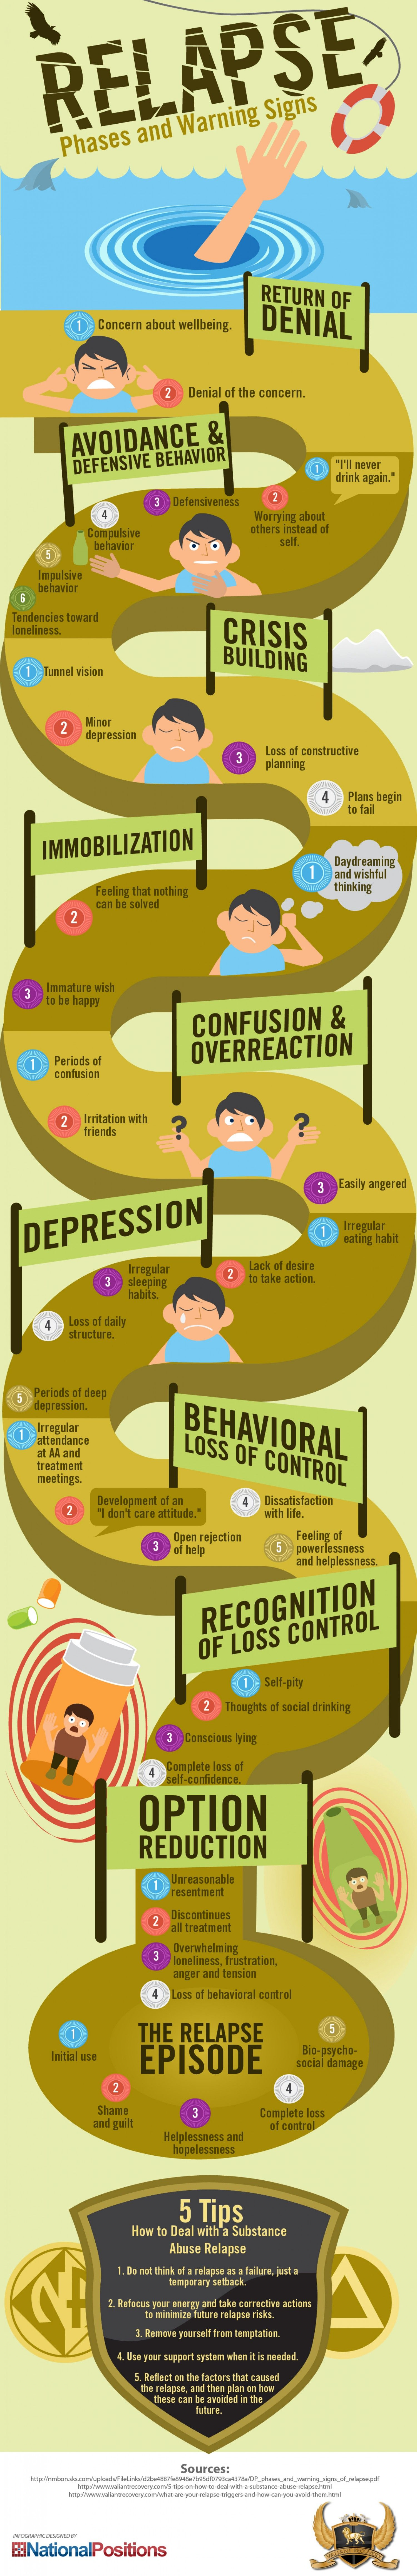 Relapse Phases And Warning Signs Infographic Health Relapse